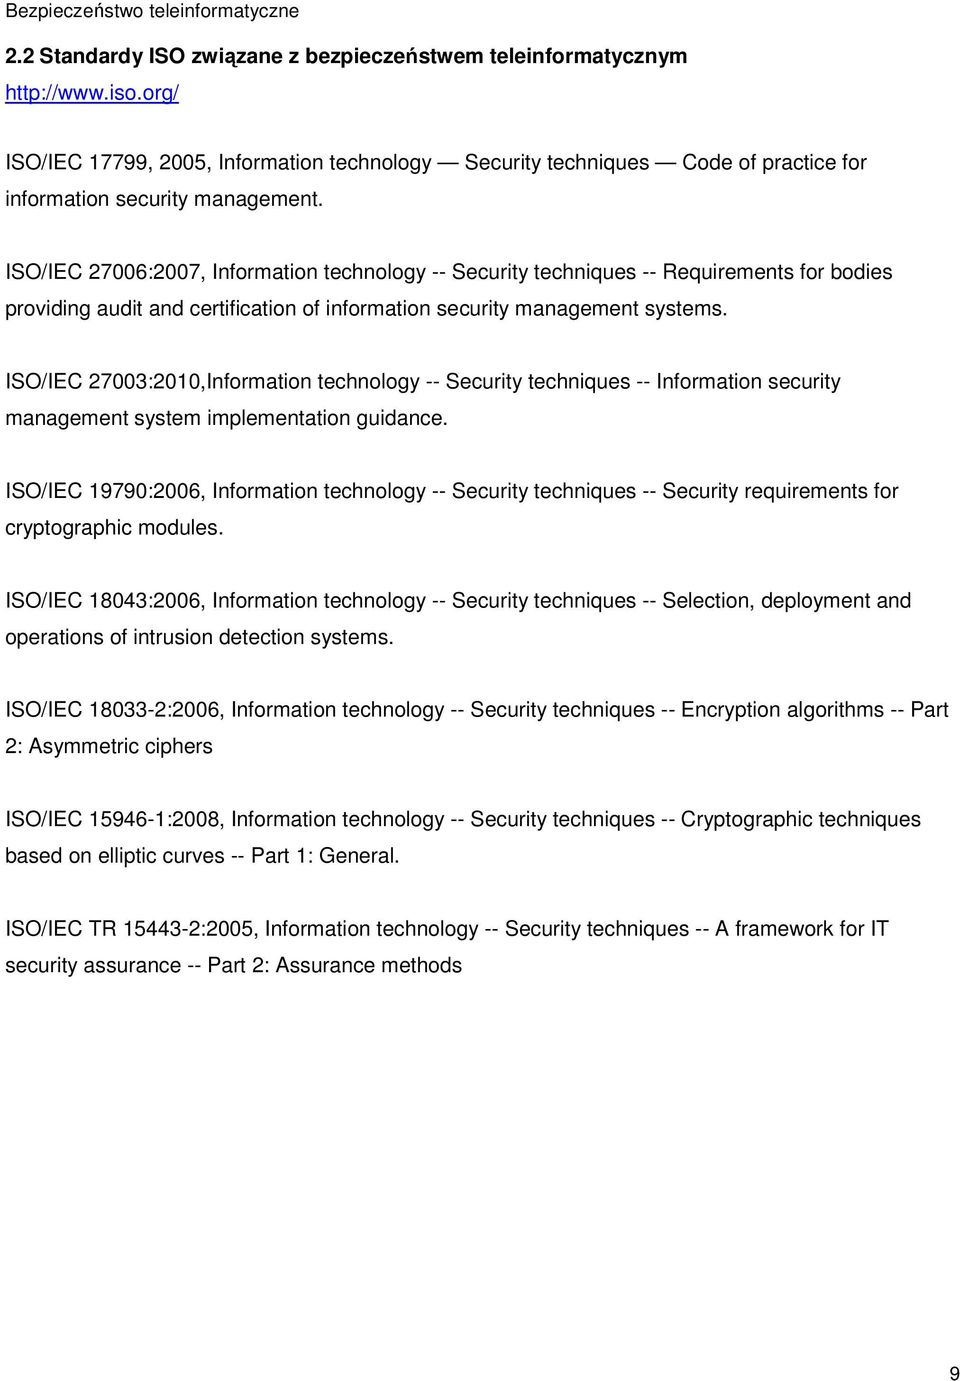 ISO/IEC 27006:2007, Information technology -- Security techniques -- Requirements for bodies providing audit and certification of information security management systems.